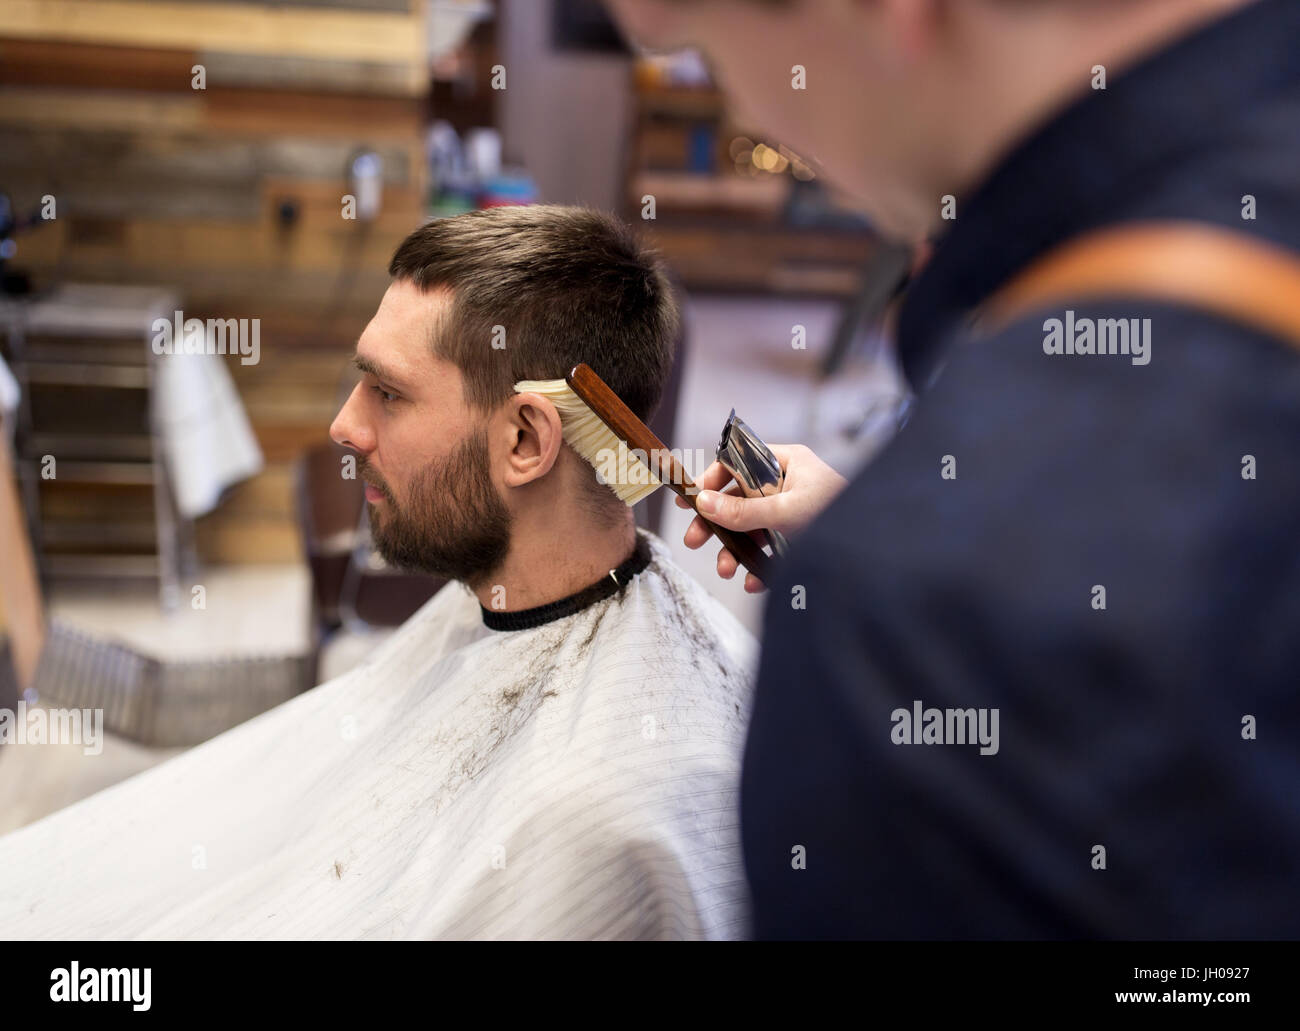 man and barber with brush cleaning hair at salon - Stock Image